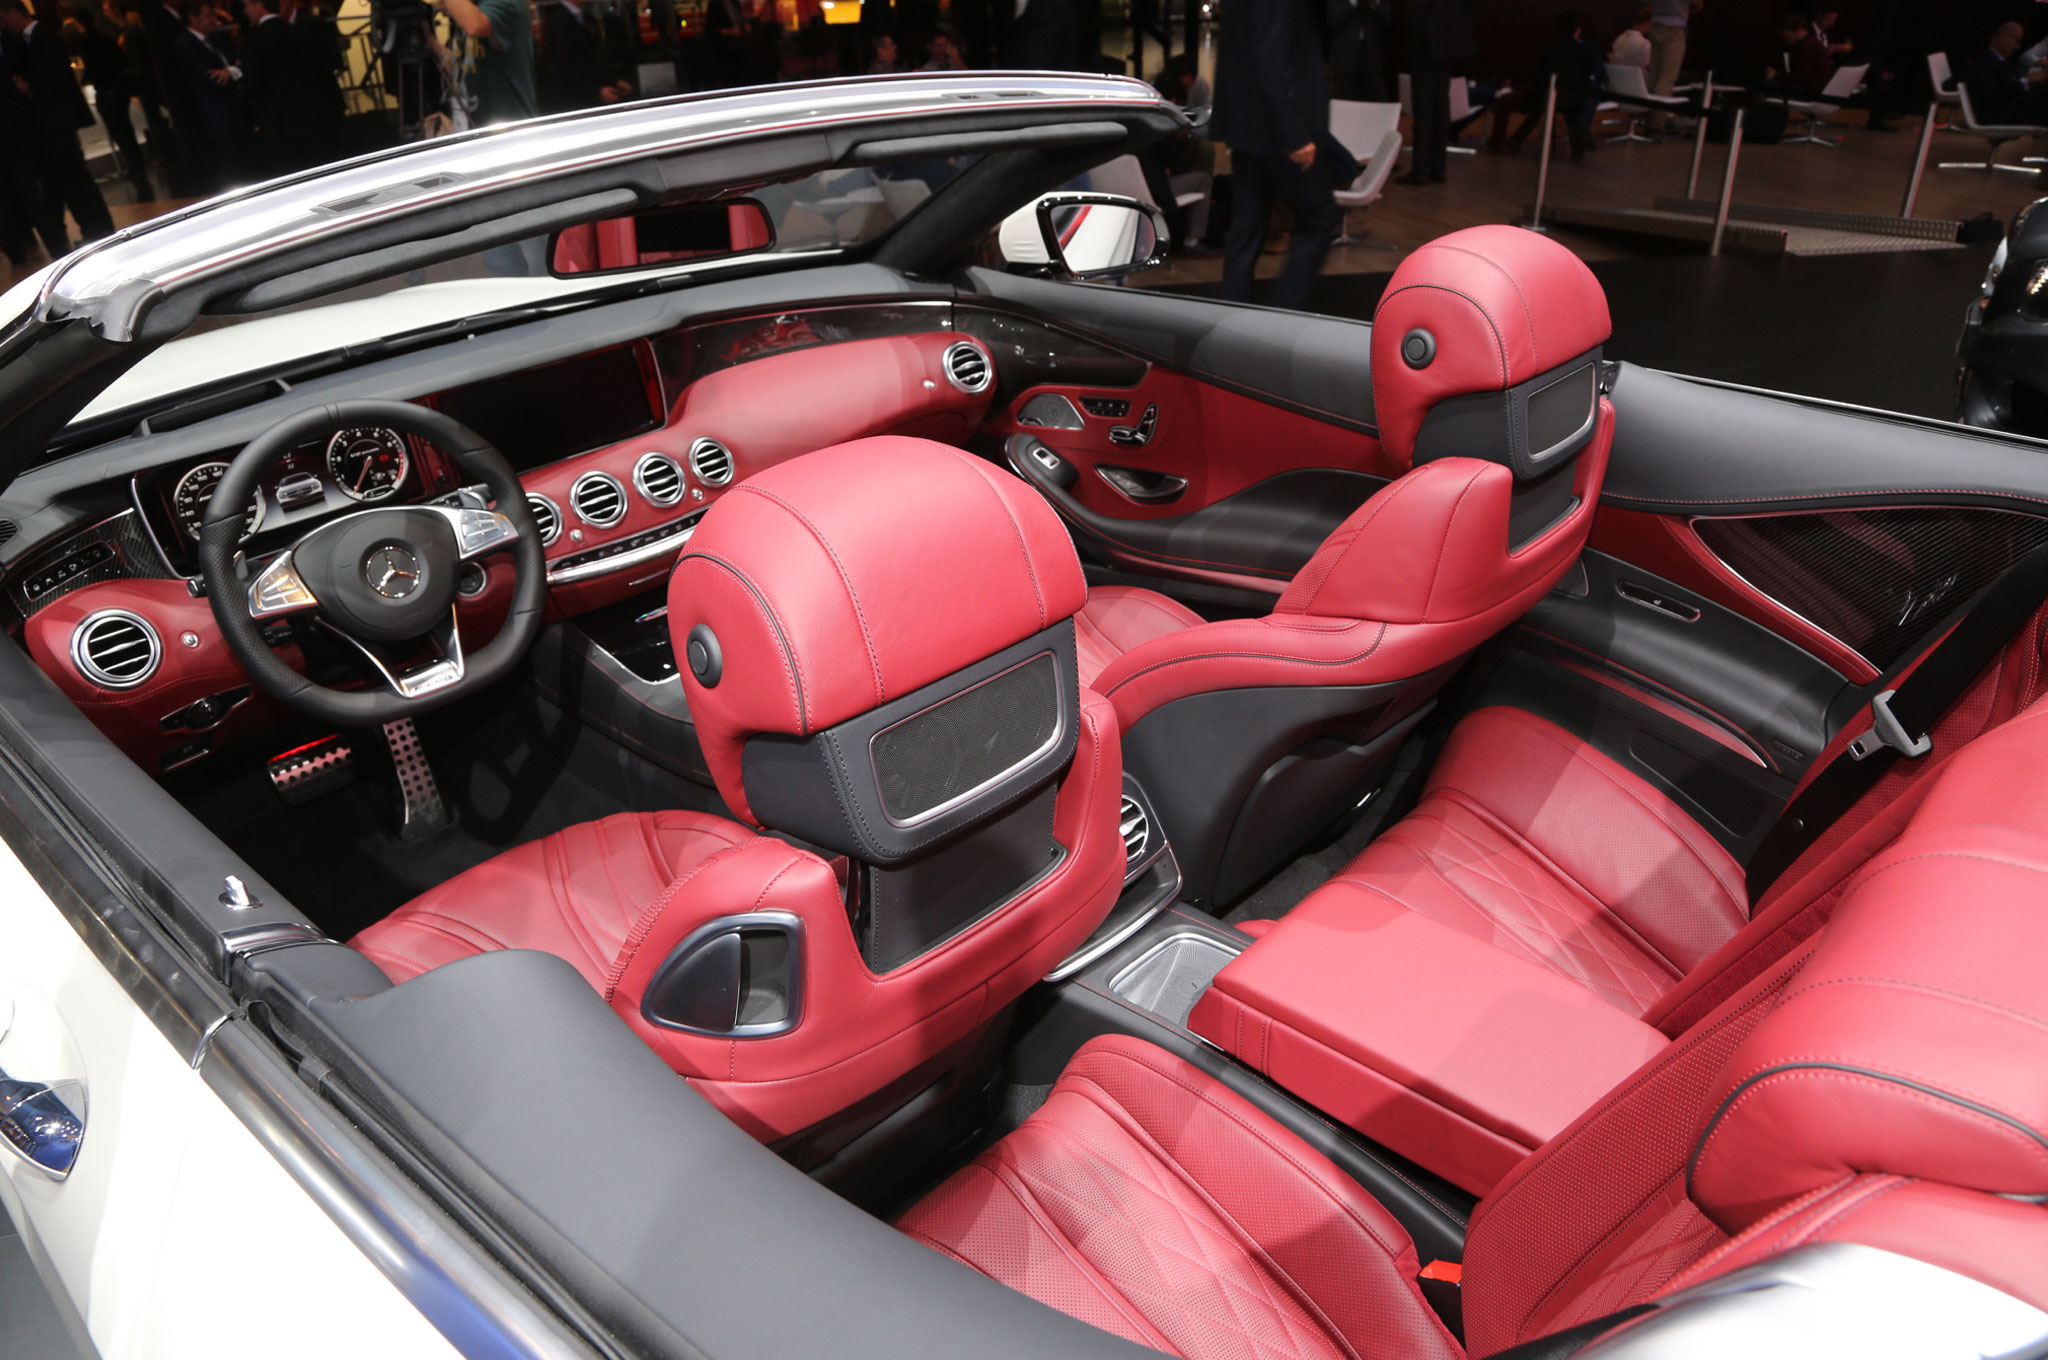 http://st.automobilemag.com/uploads/sites/11/2015/09/Mercedes-AMG-S63-Cabriolet-front-and-rear-seats.jpg